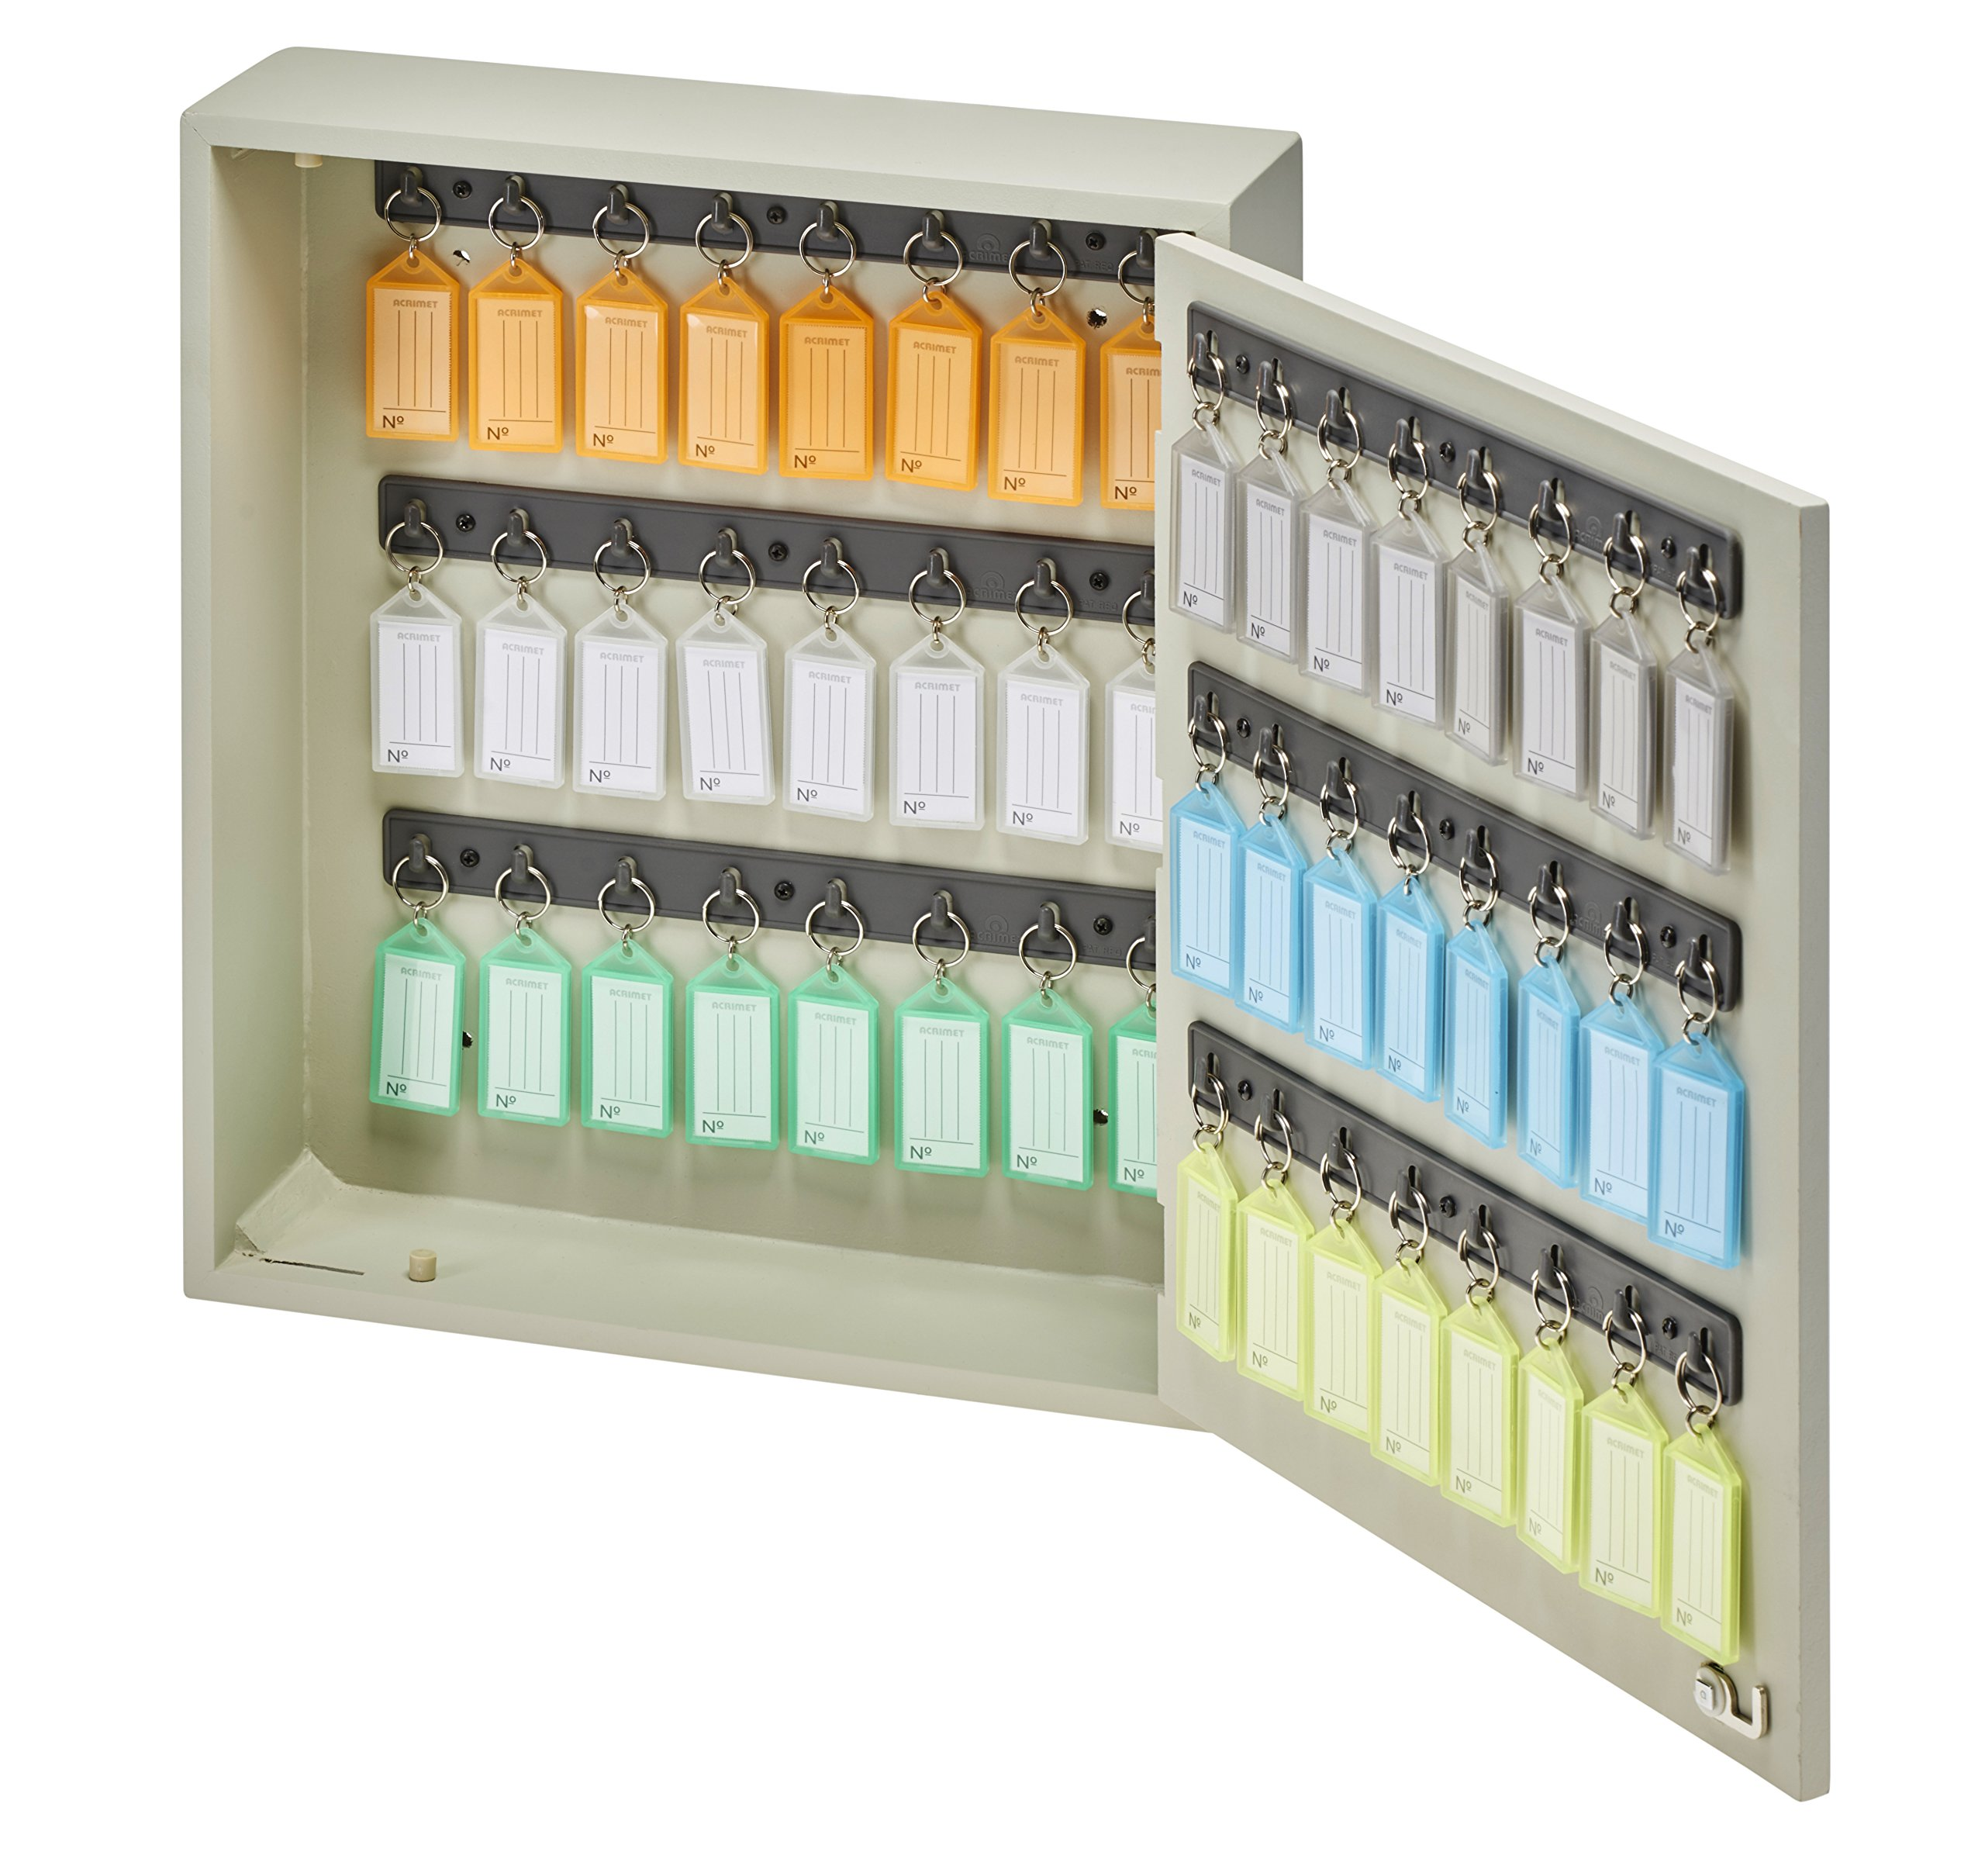 Acrimet Key Cabinet, 48 Positions, with 48 Key Tags